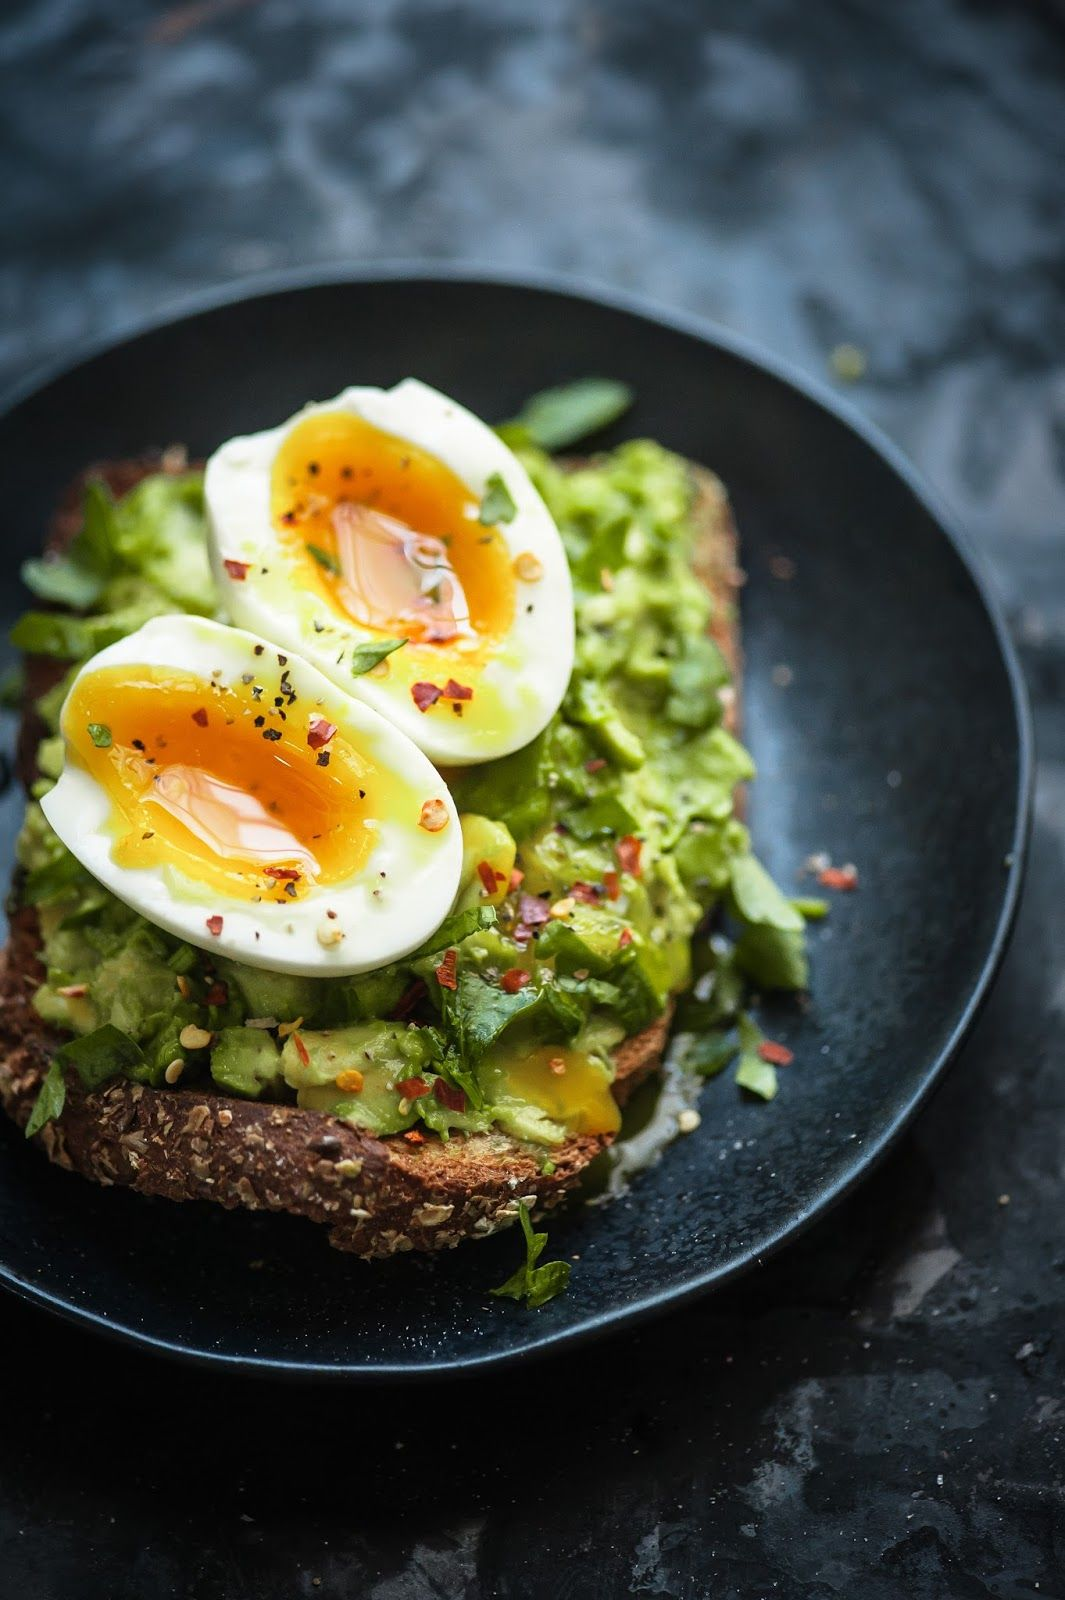 Avocado Toast with Foolproof Soft Boil Egg — Gather a Table